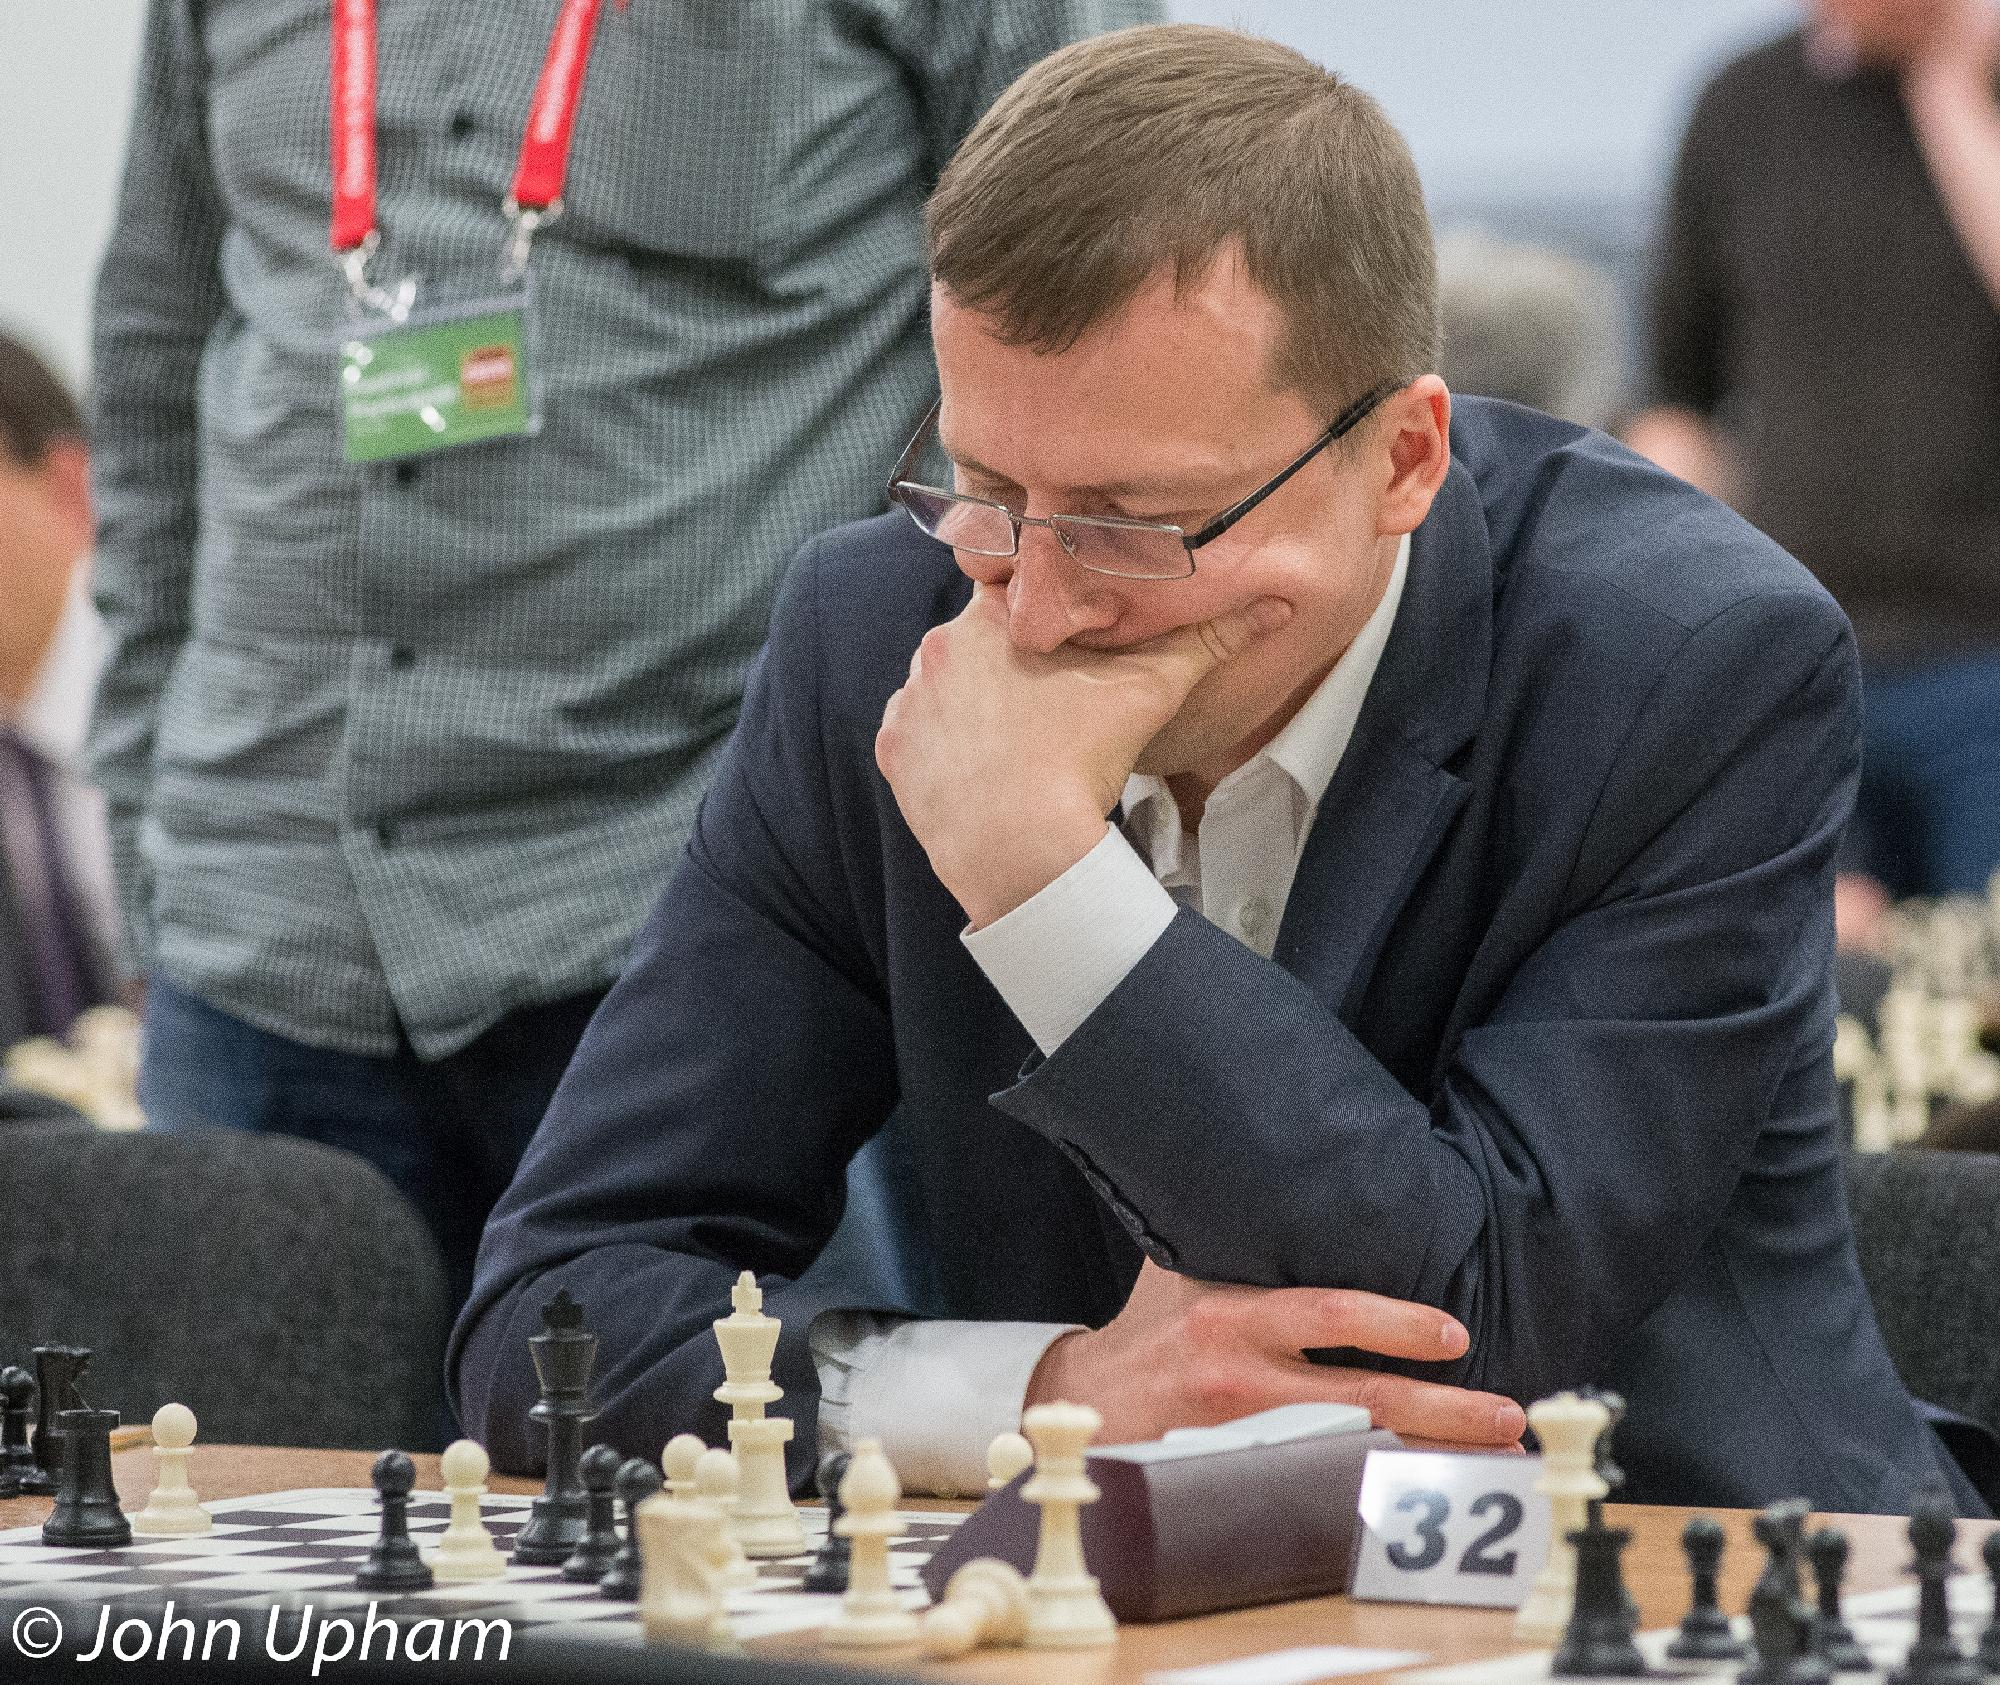 GM Alexander Cherniaev, London Chess Classic 2014, courtesy of John Upham Photography